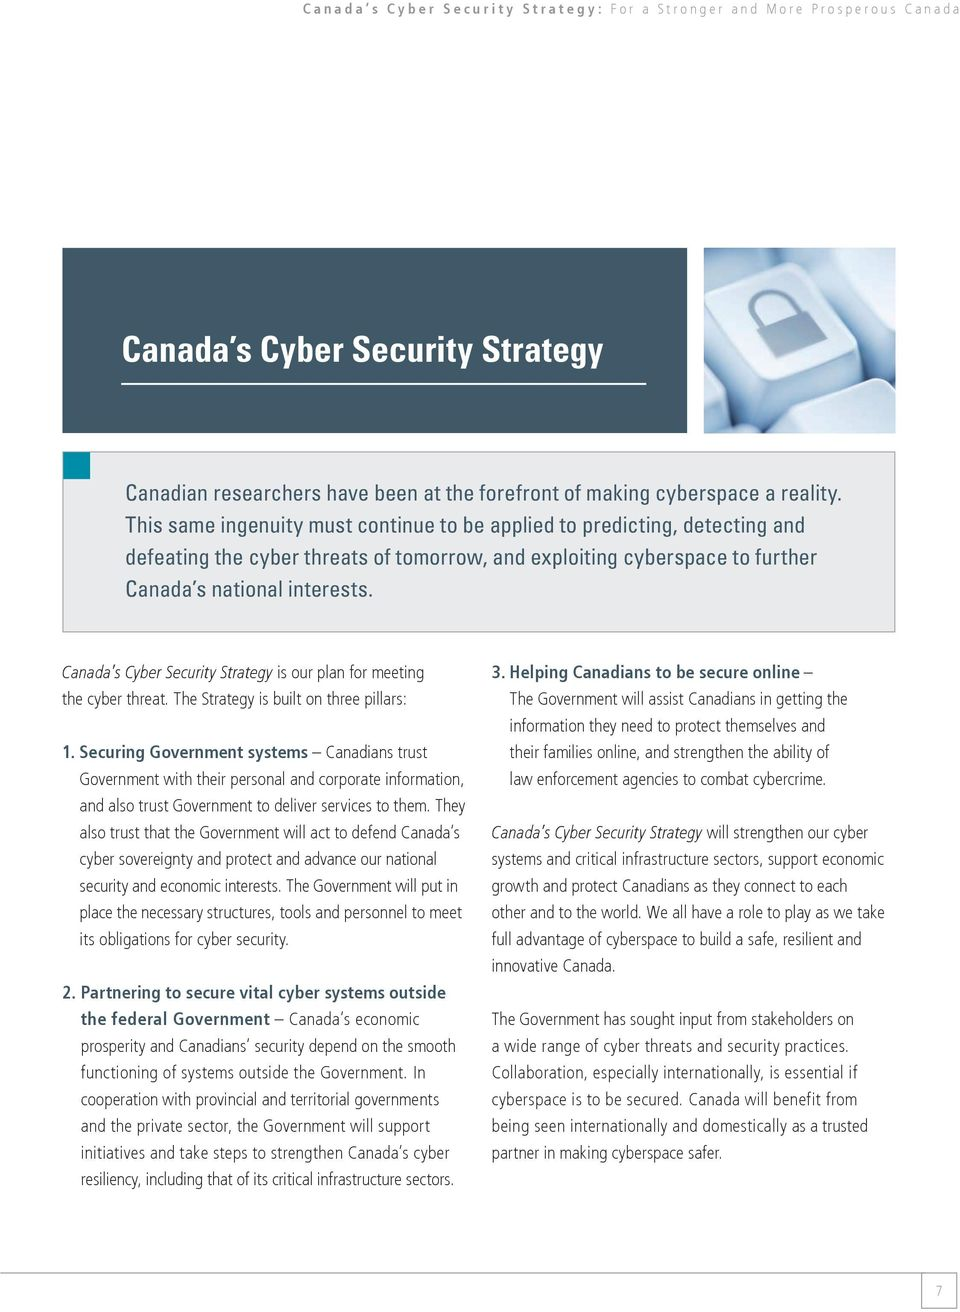 Canada s Cyber Security Strategy is our plan for meeting the cyber threat. The Strategy is built on three pillars: 1.